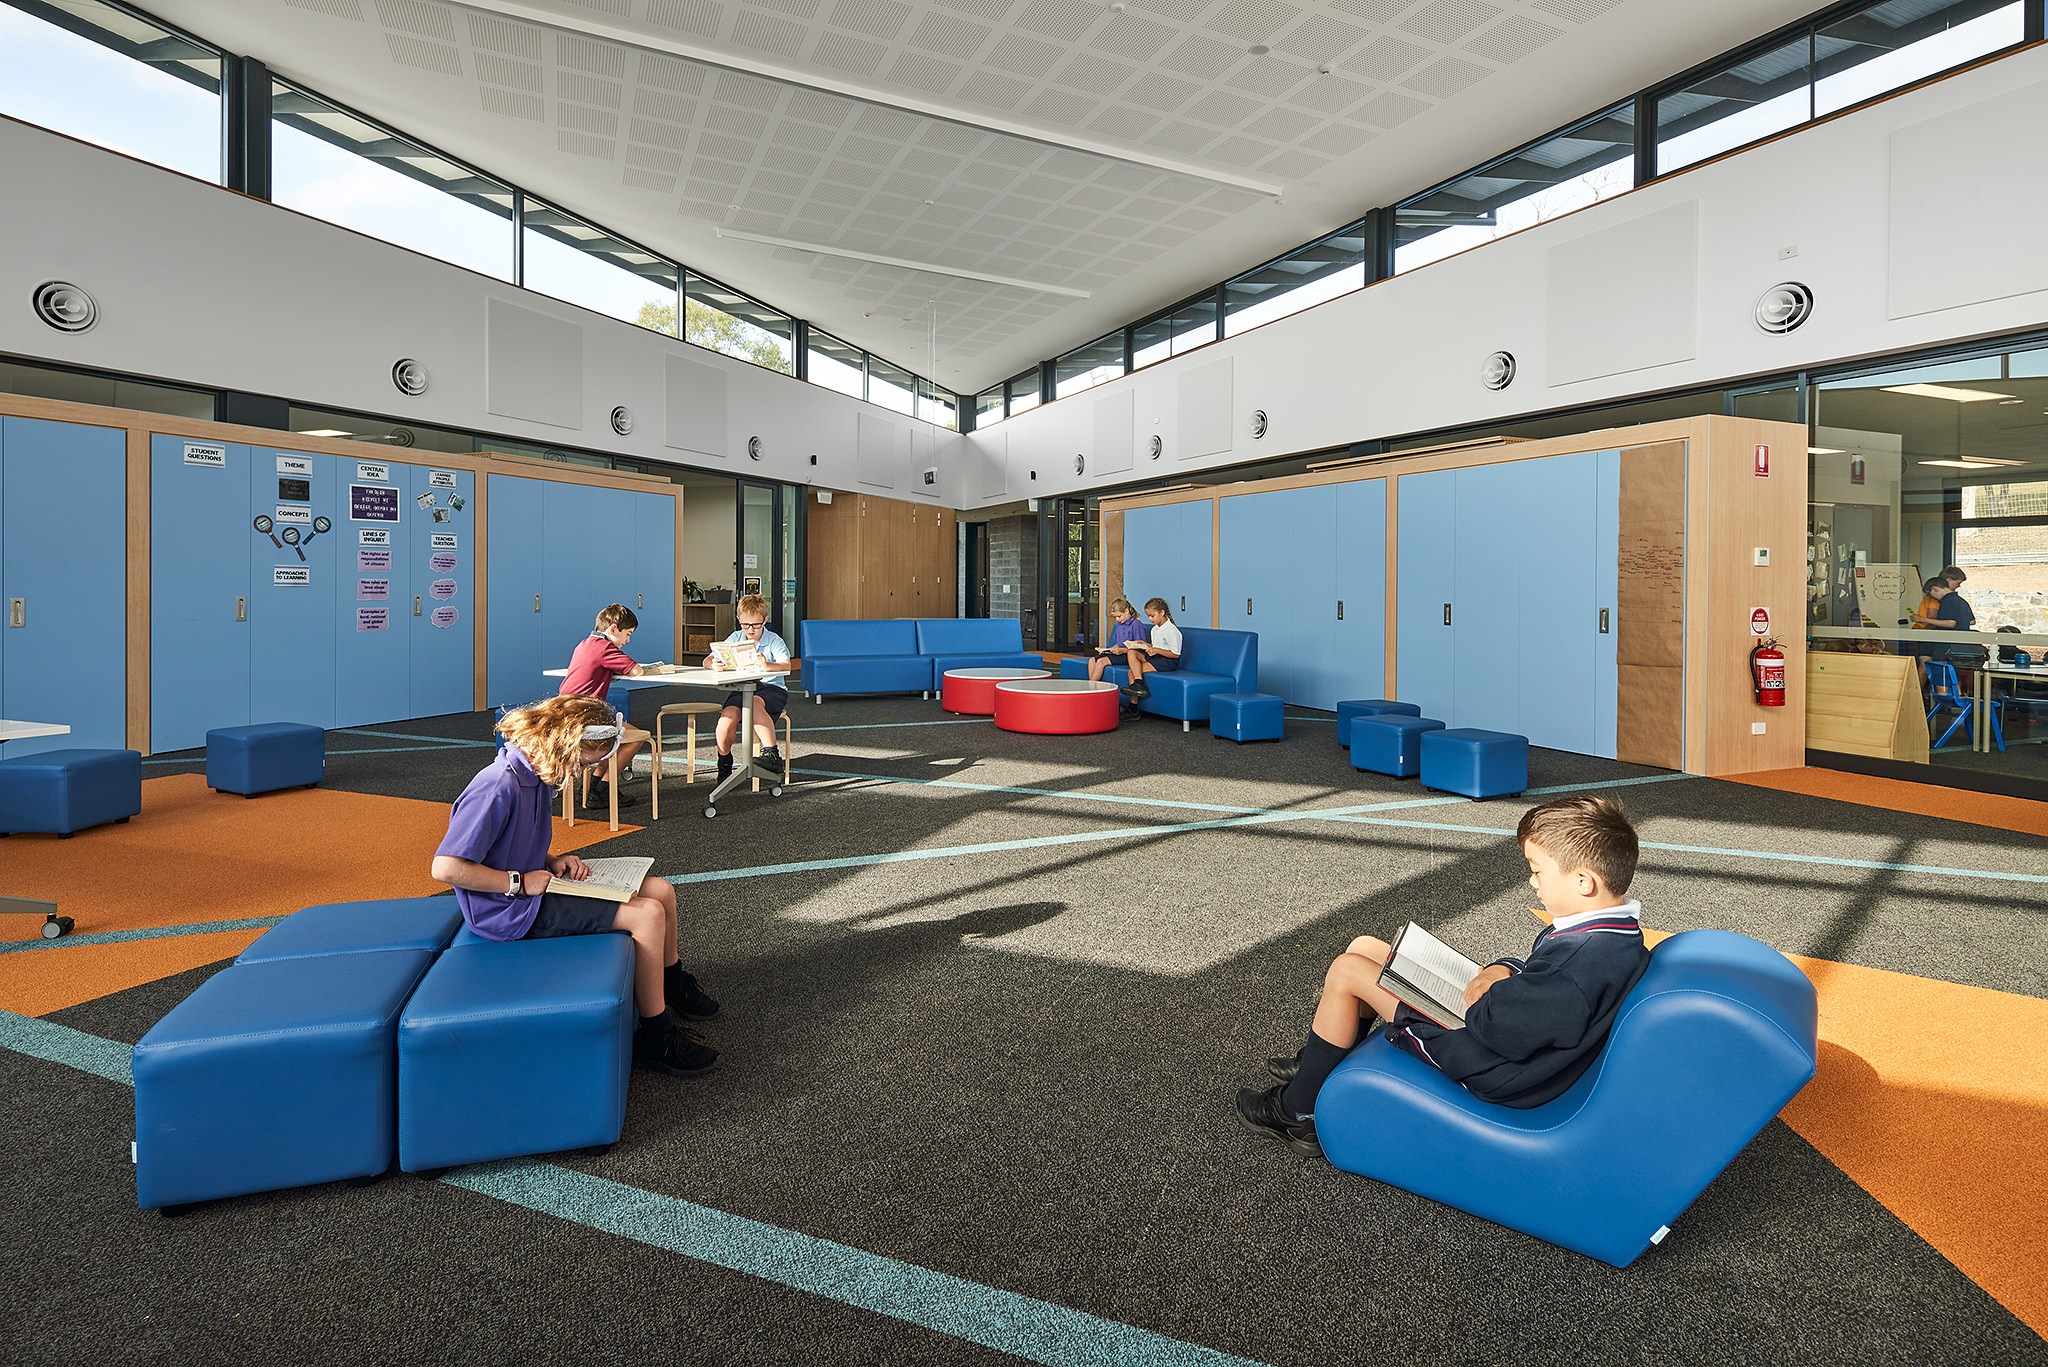 Inside a modern school classroom layout changeable space design.